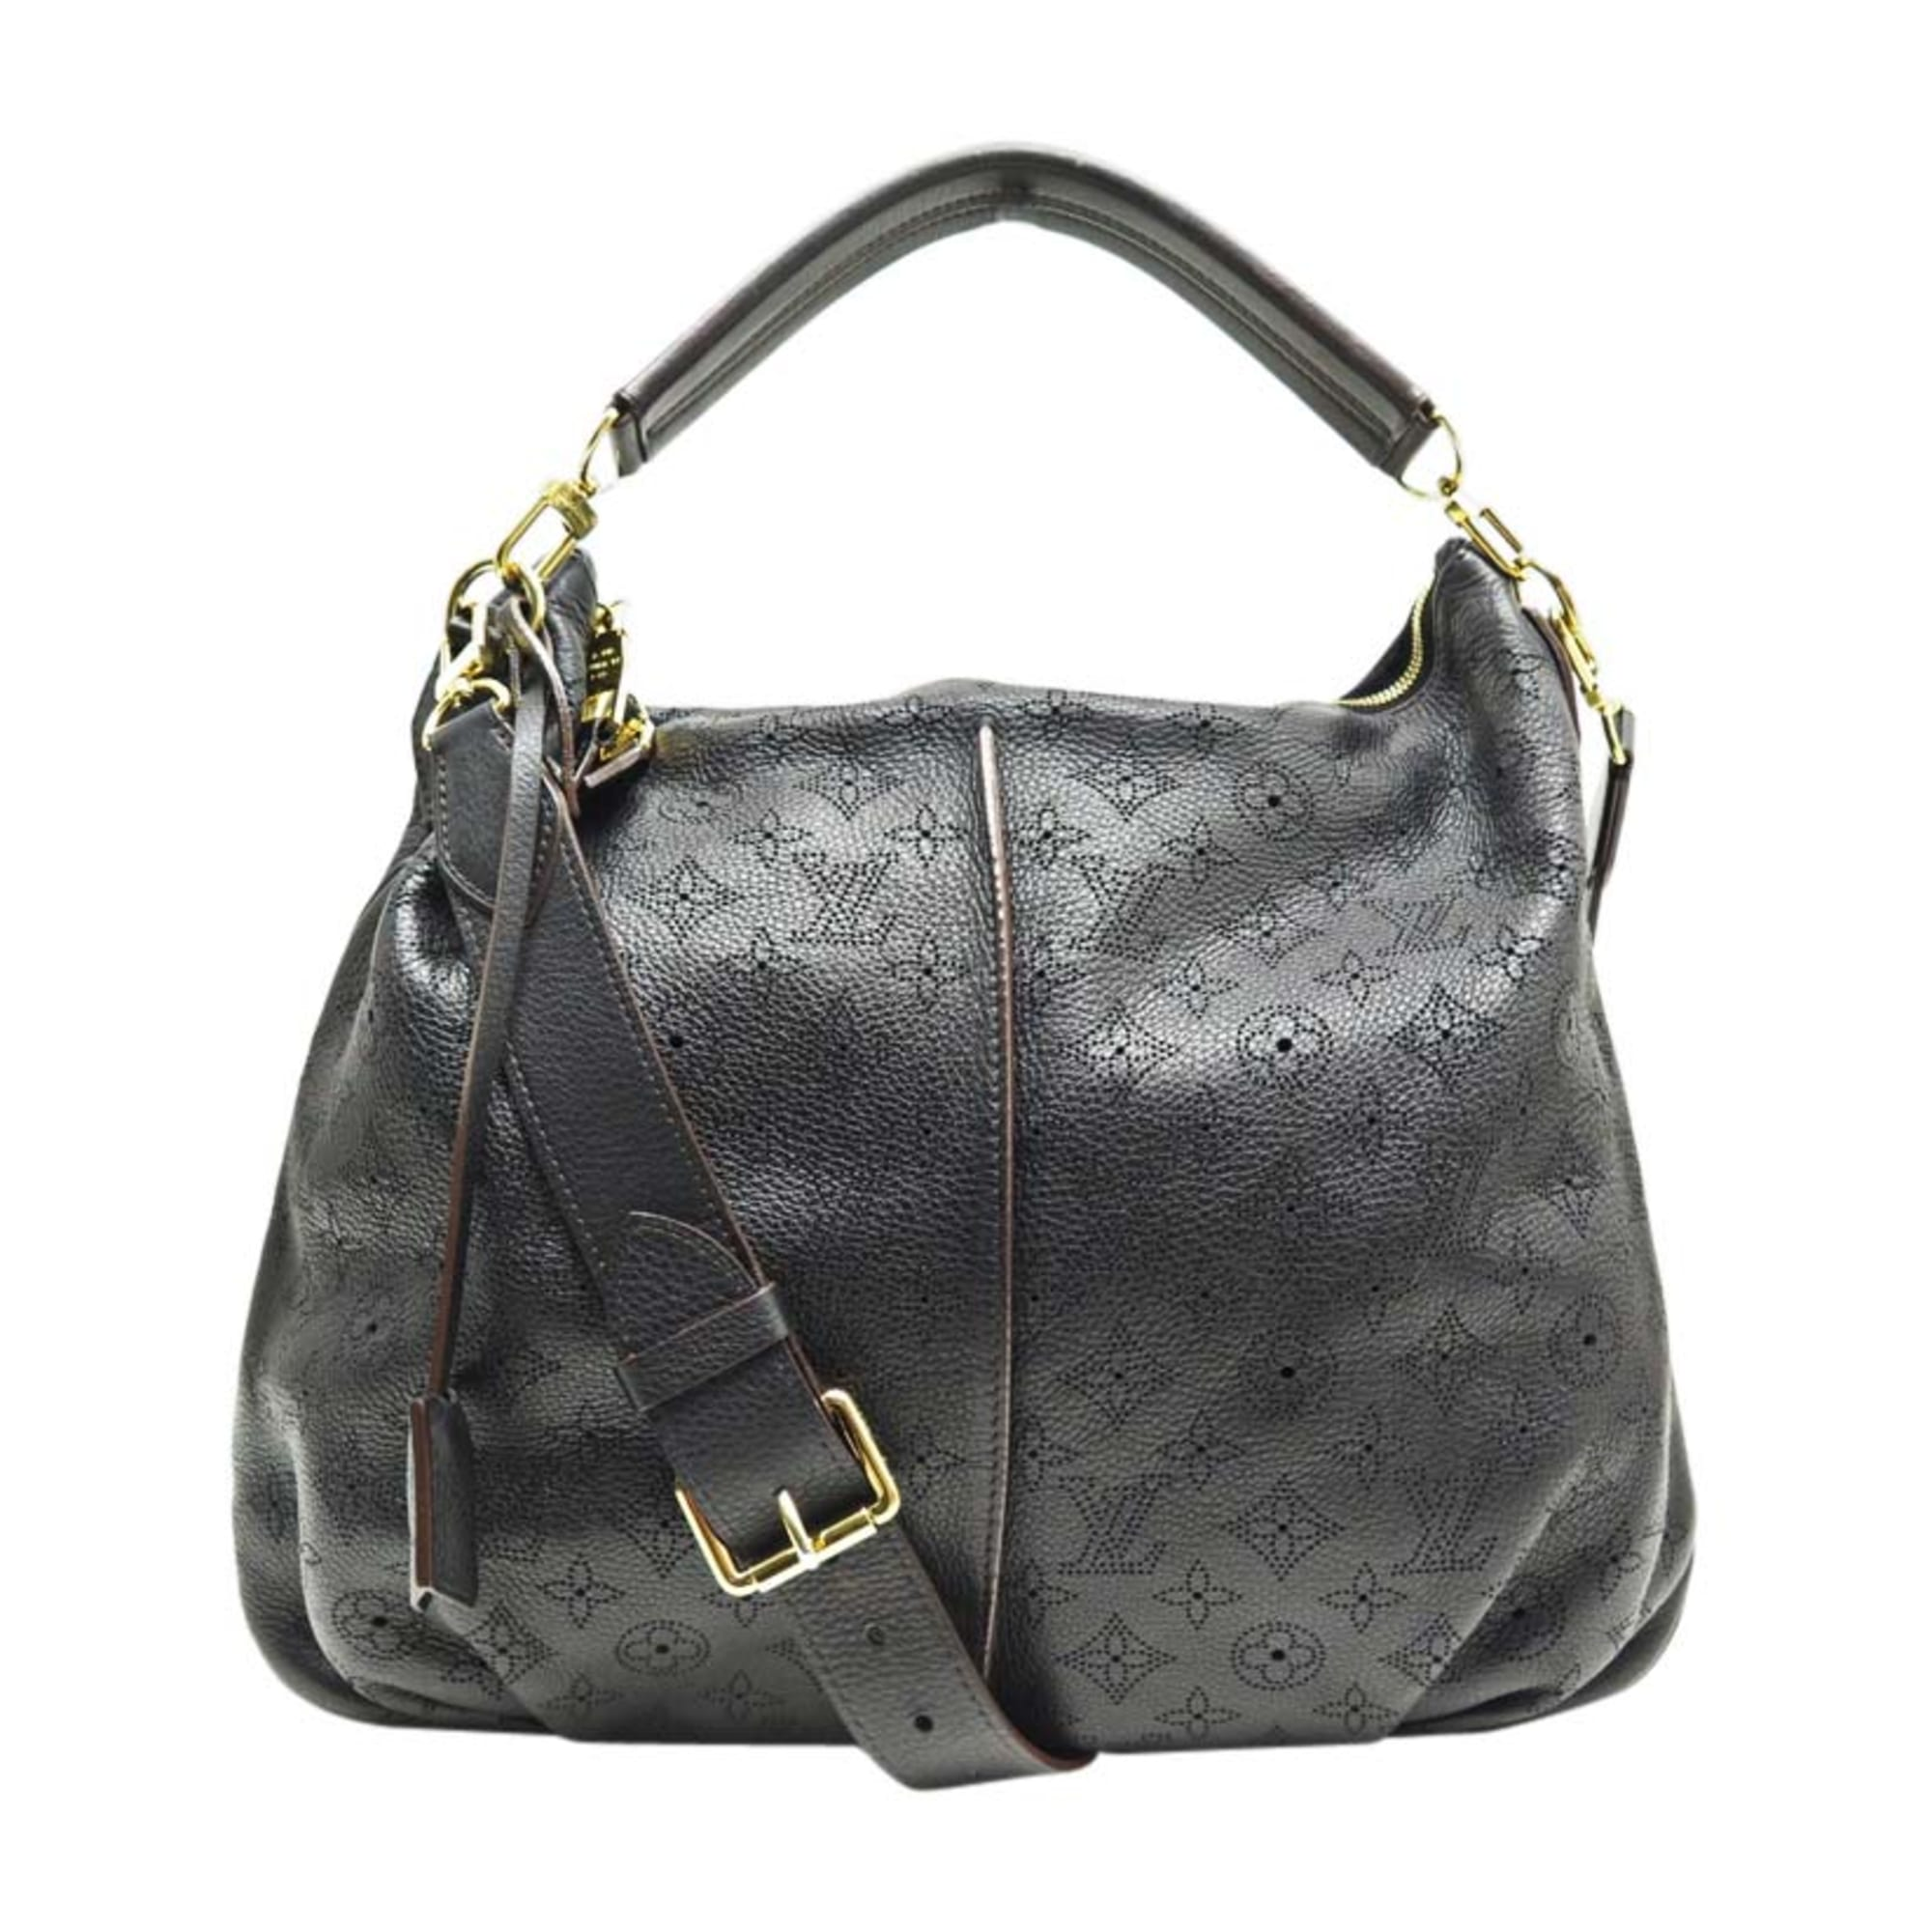 Leather Shoulder Bag LOUIS VUITTON Black